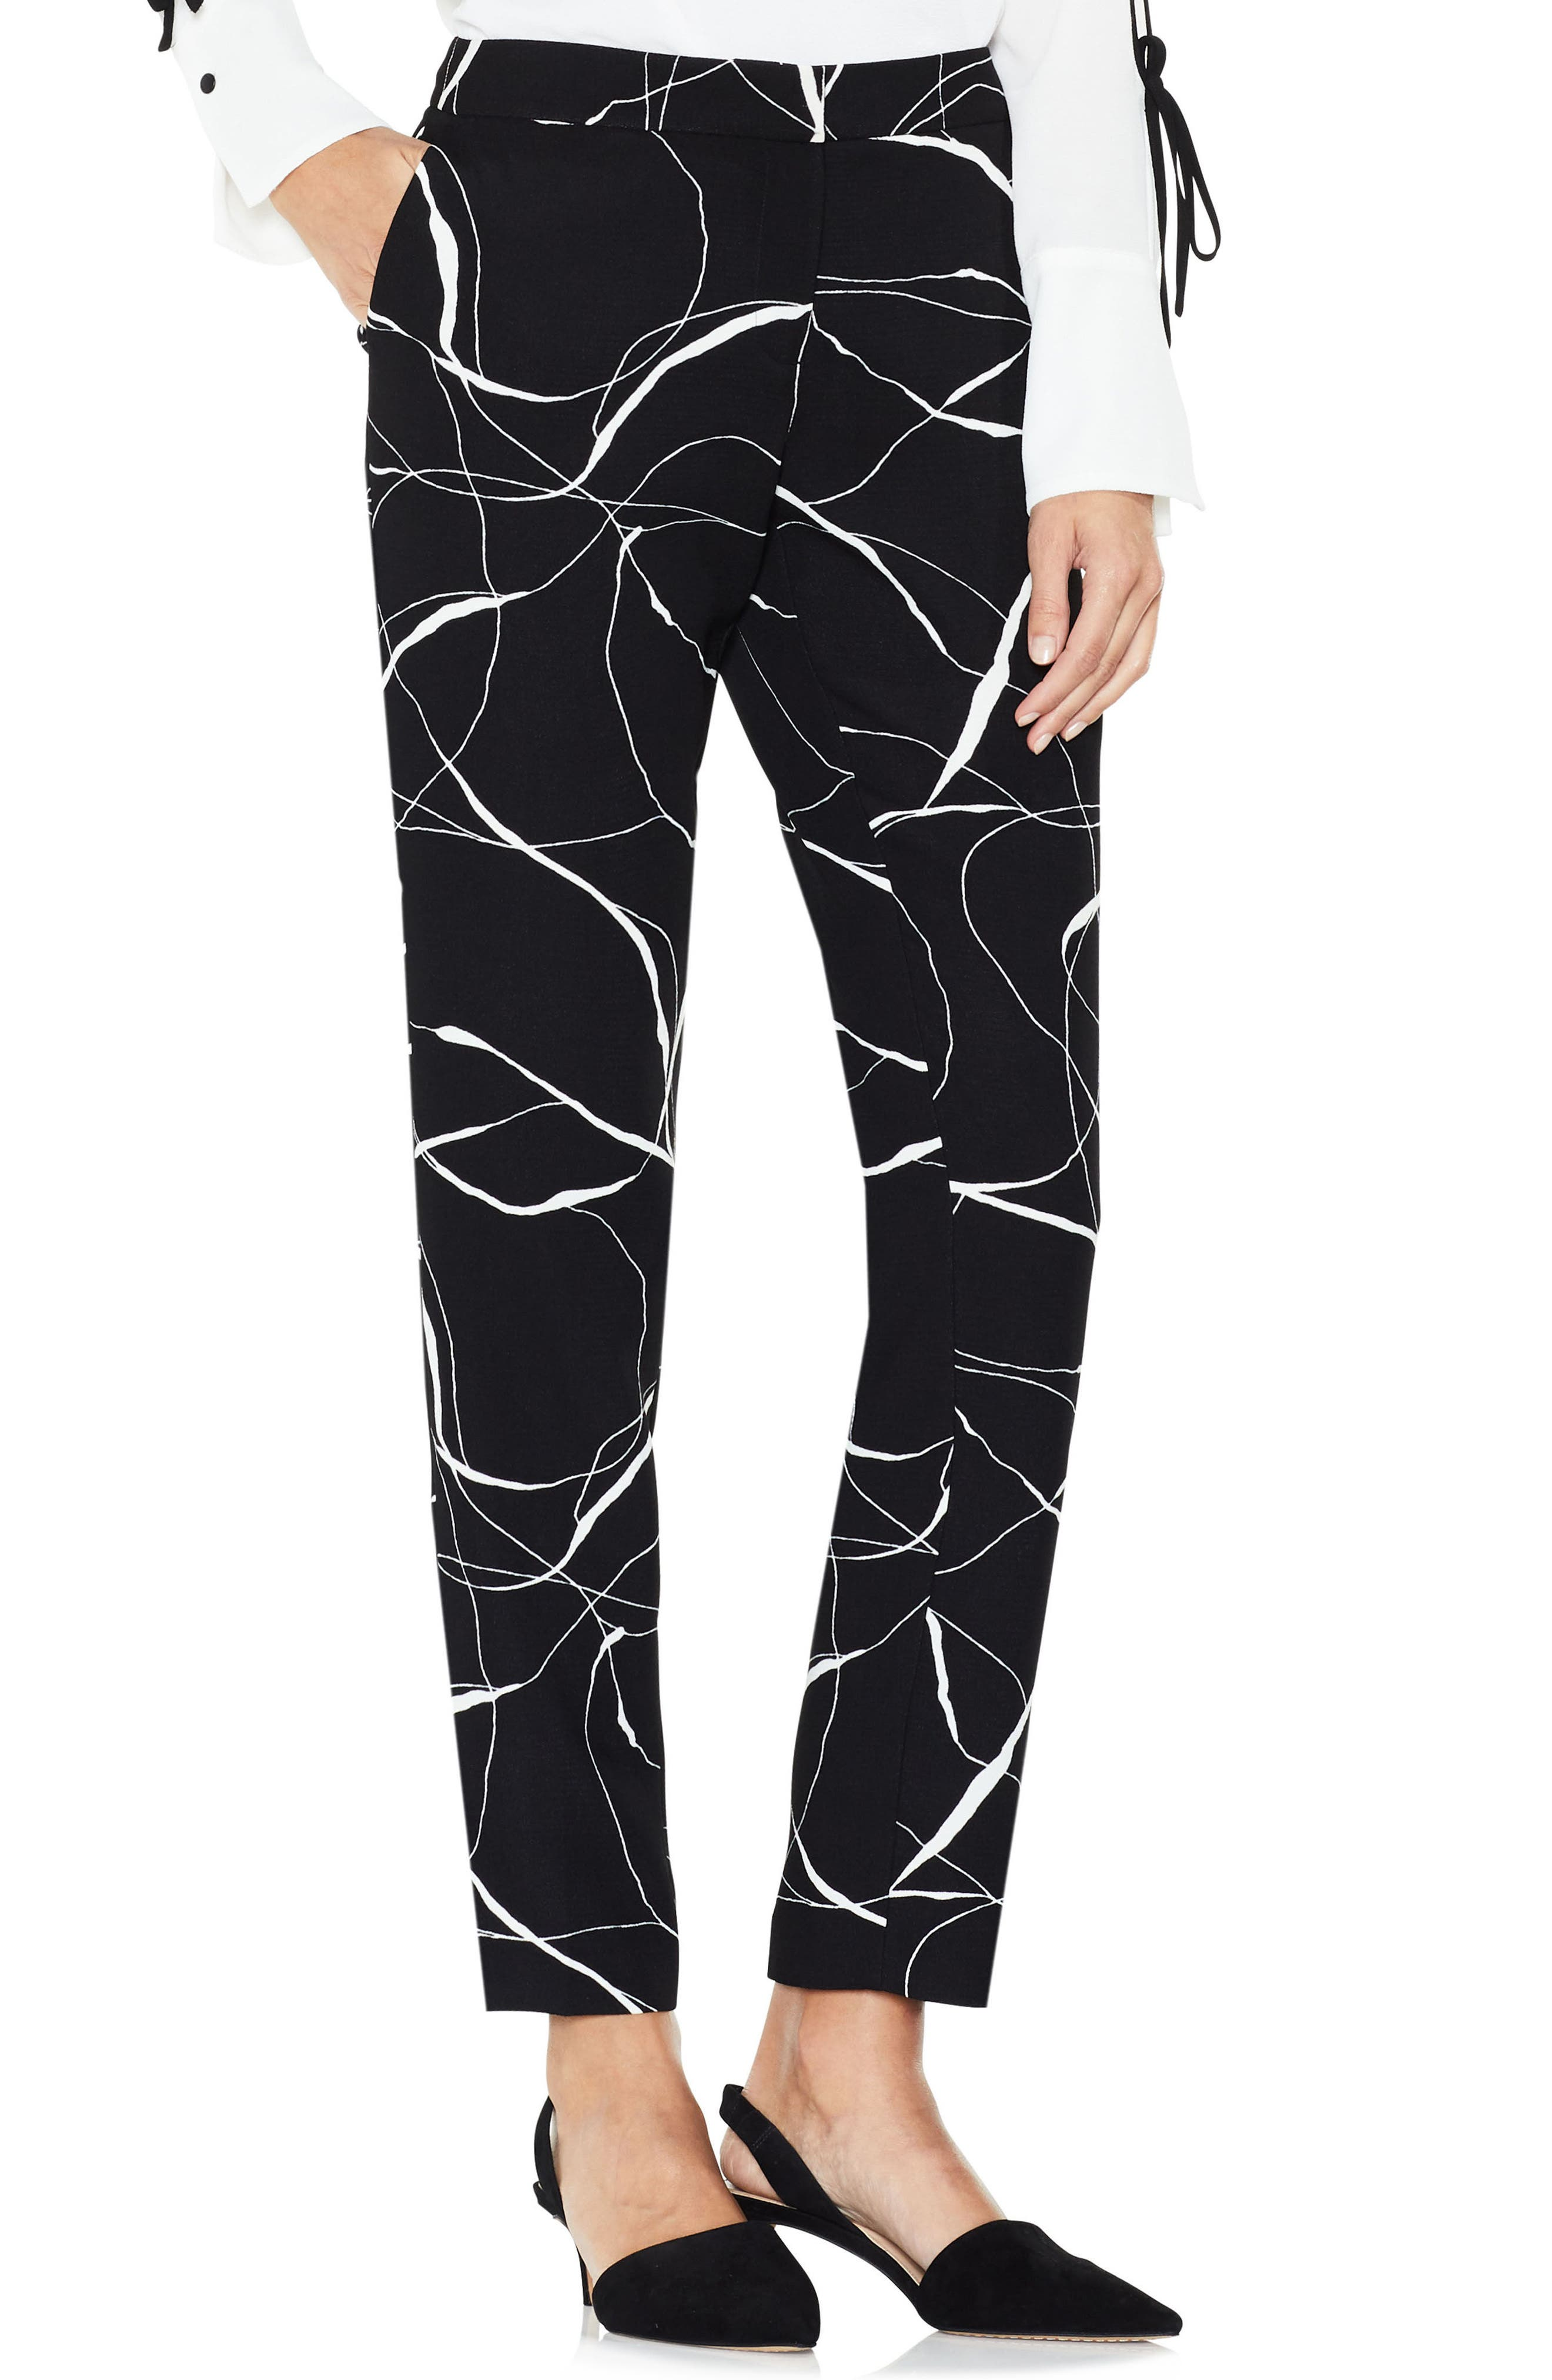 Main Image - Vince Camuto Ink Swirl Print Ankle Pants